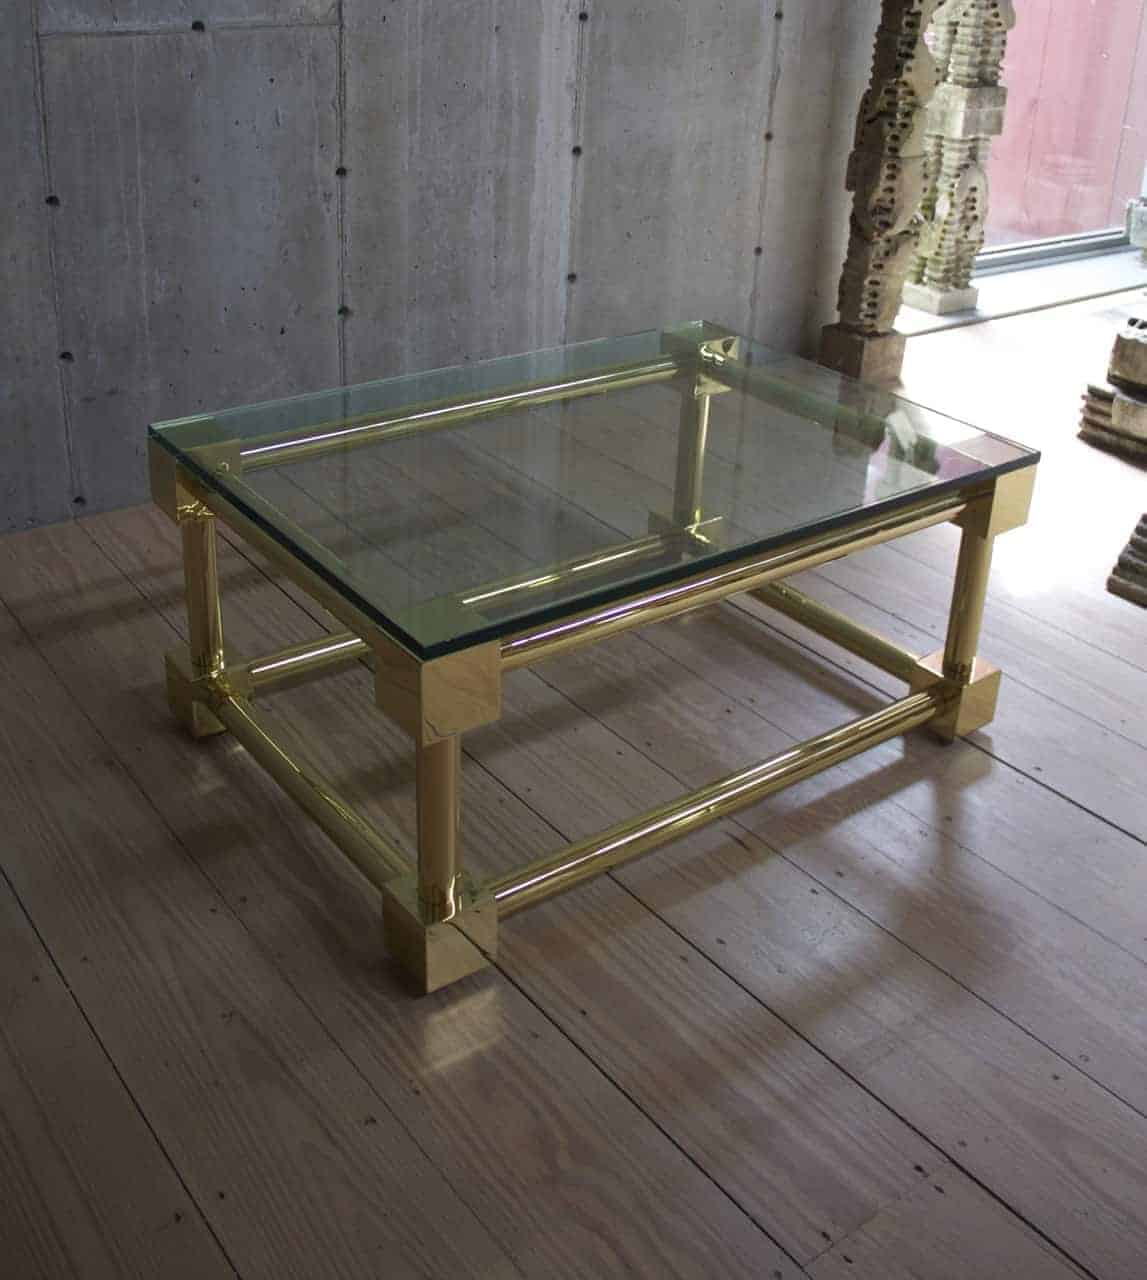 Messing Couchtisch Mit Glasplatte Antique Polished Brass Coffee Table With Glass Top Rt Facts